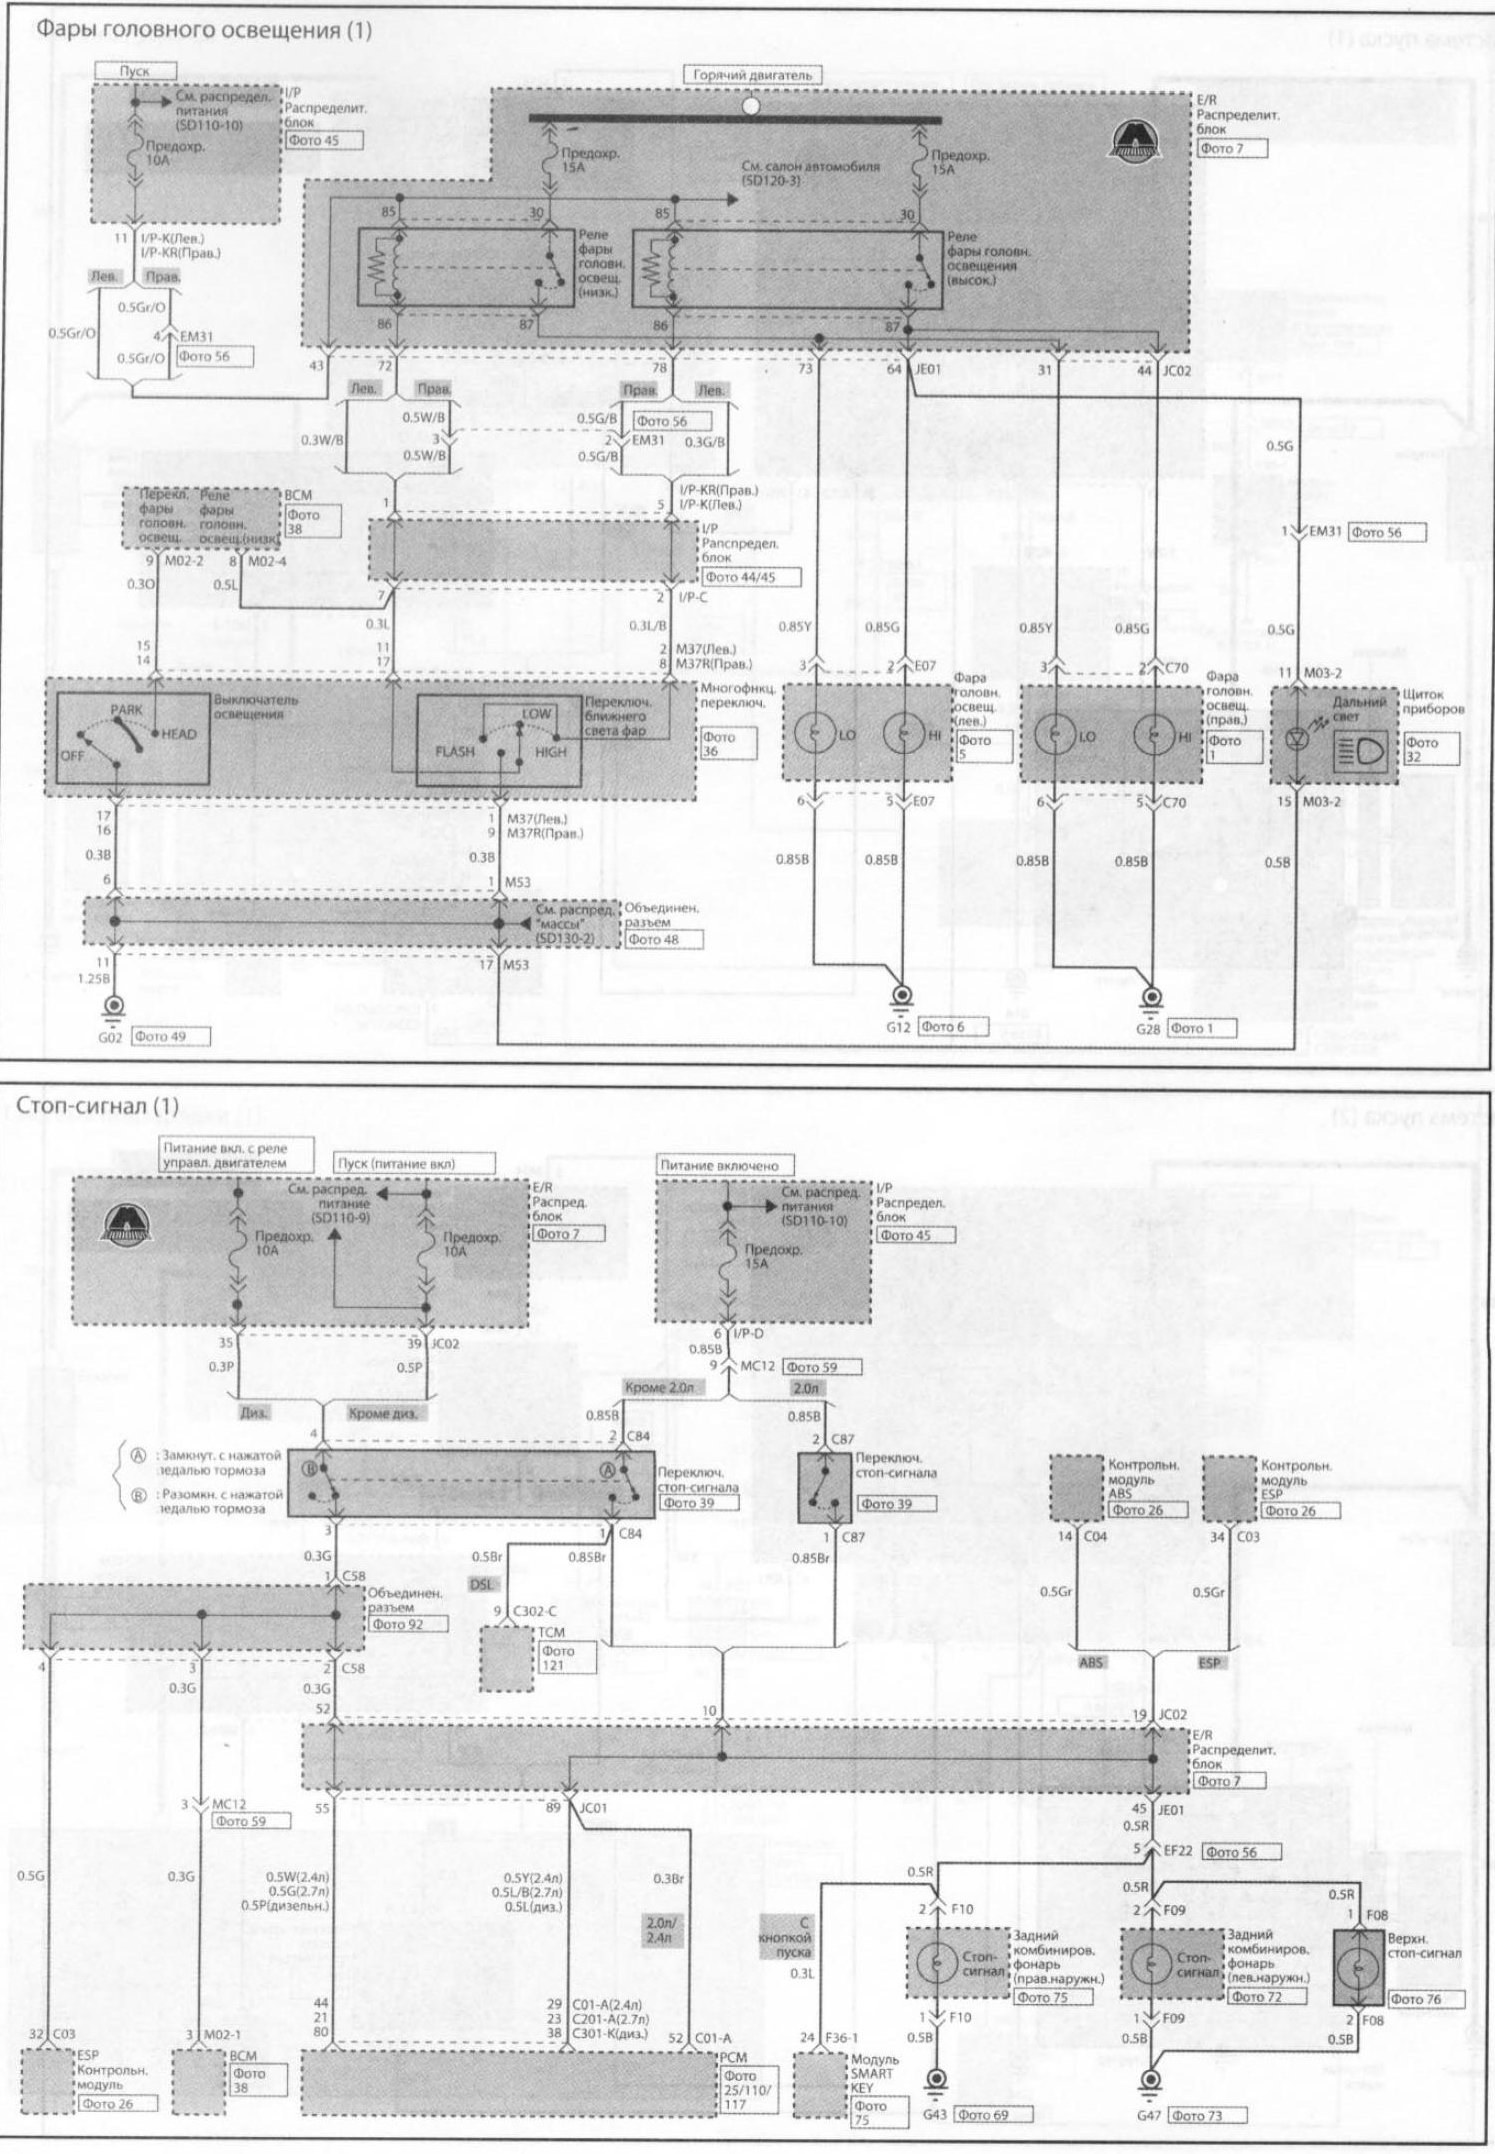 kia car manuals wiring diagrams pdf fault codes rh automotive manuals net kia picanto wiring diagram pdf 2011 Kia Sorento Wiring-Diagram